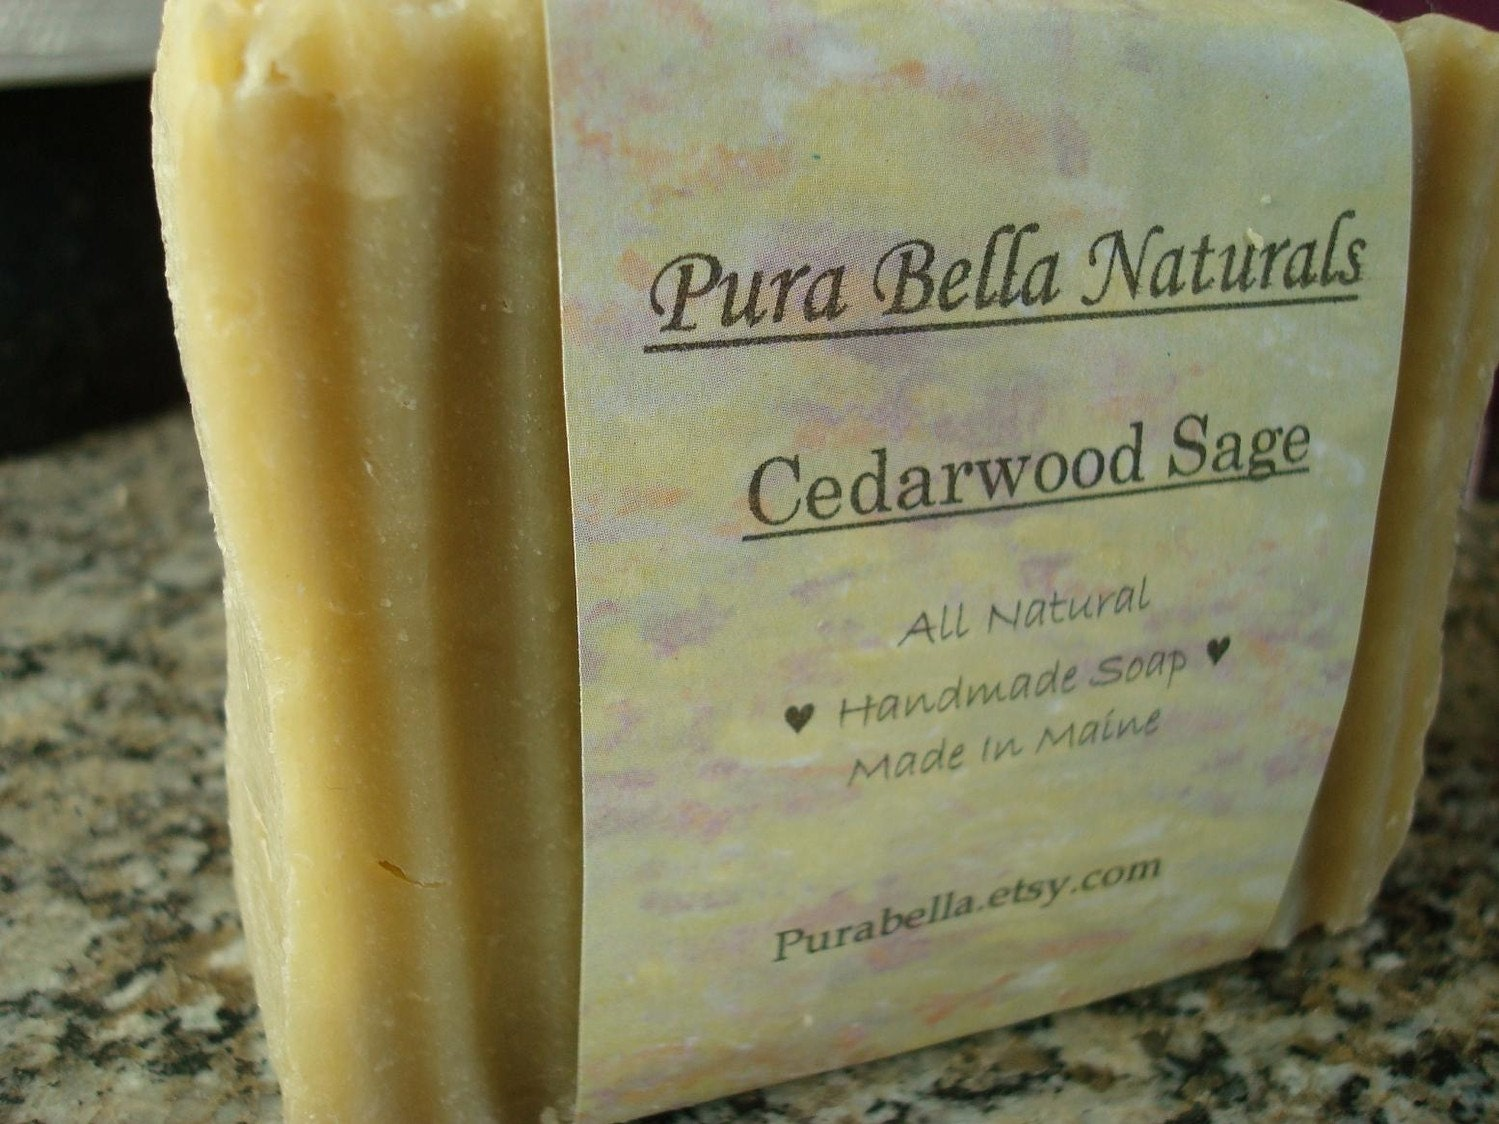 Cedarwood and Sage Hot Process Handmade Soap Made in Maine